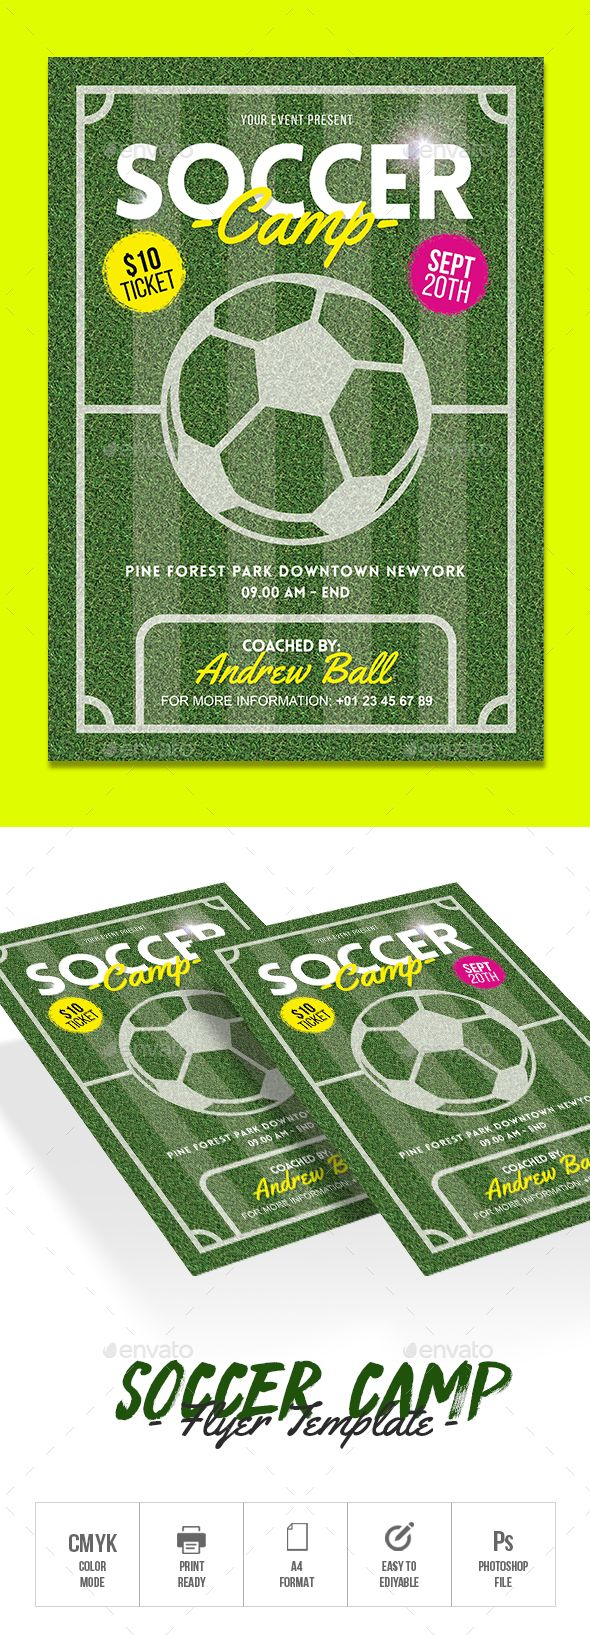 Soccer Camp — Photoshop PSD #football #advertisement • Download ➝ https://graphicriver.net/item/soccer-camp/20516131?ref=pxcr